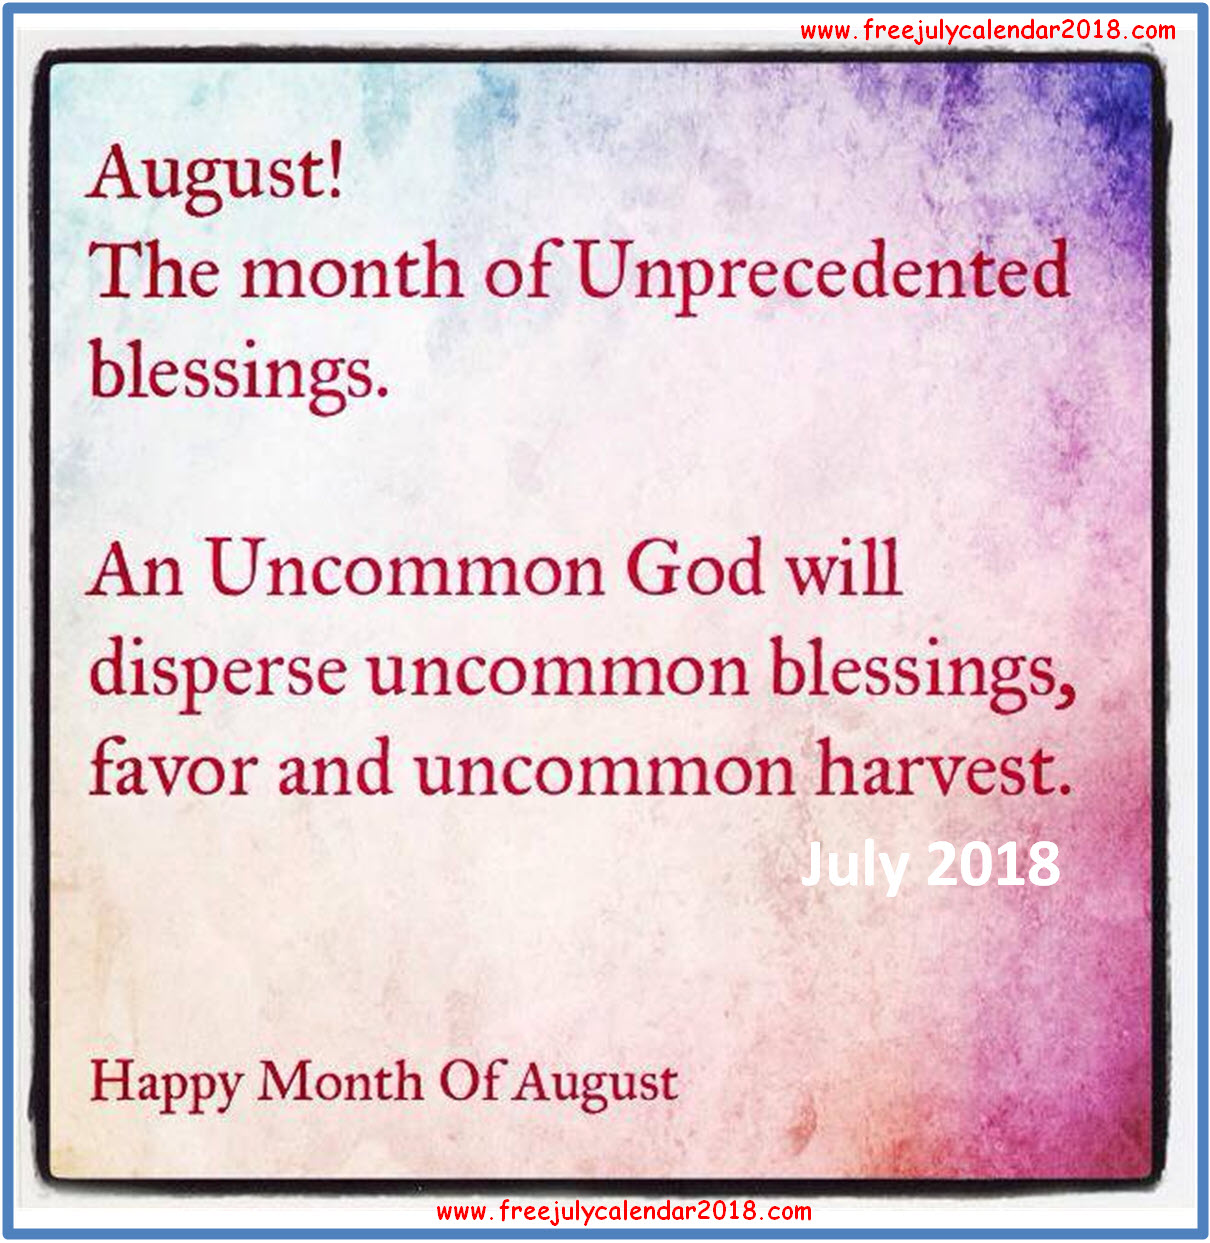 Best of July Quotes And Sayings For Calendars - Mesgulsinyali